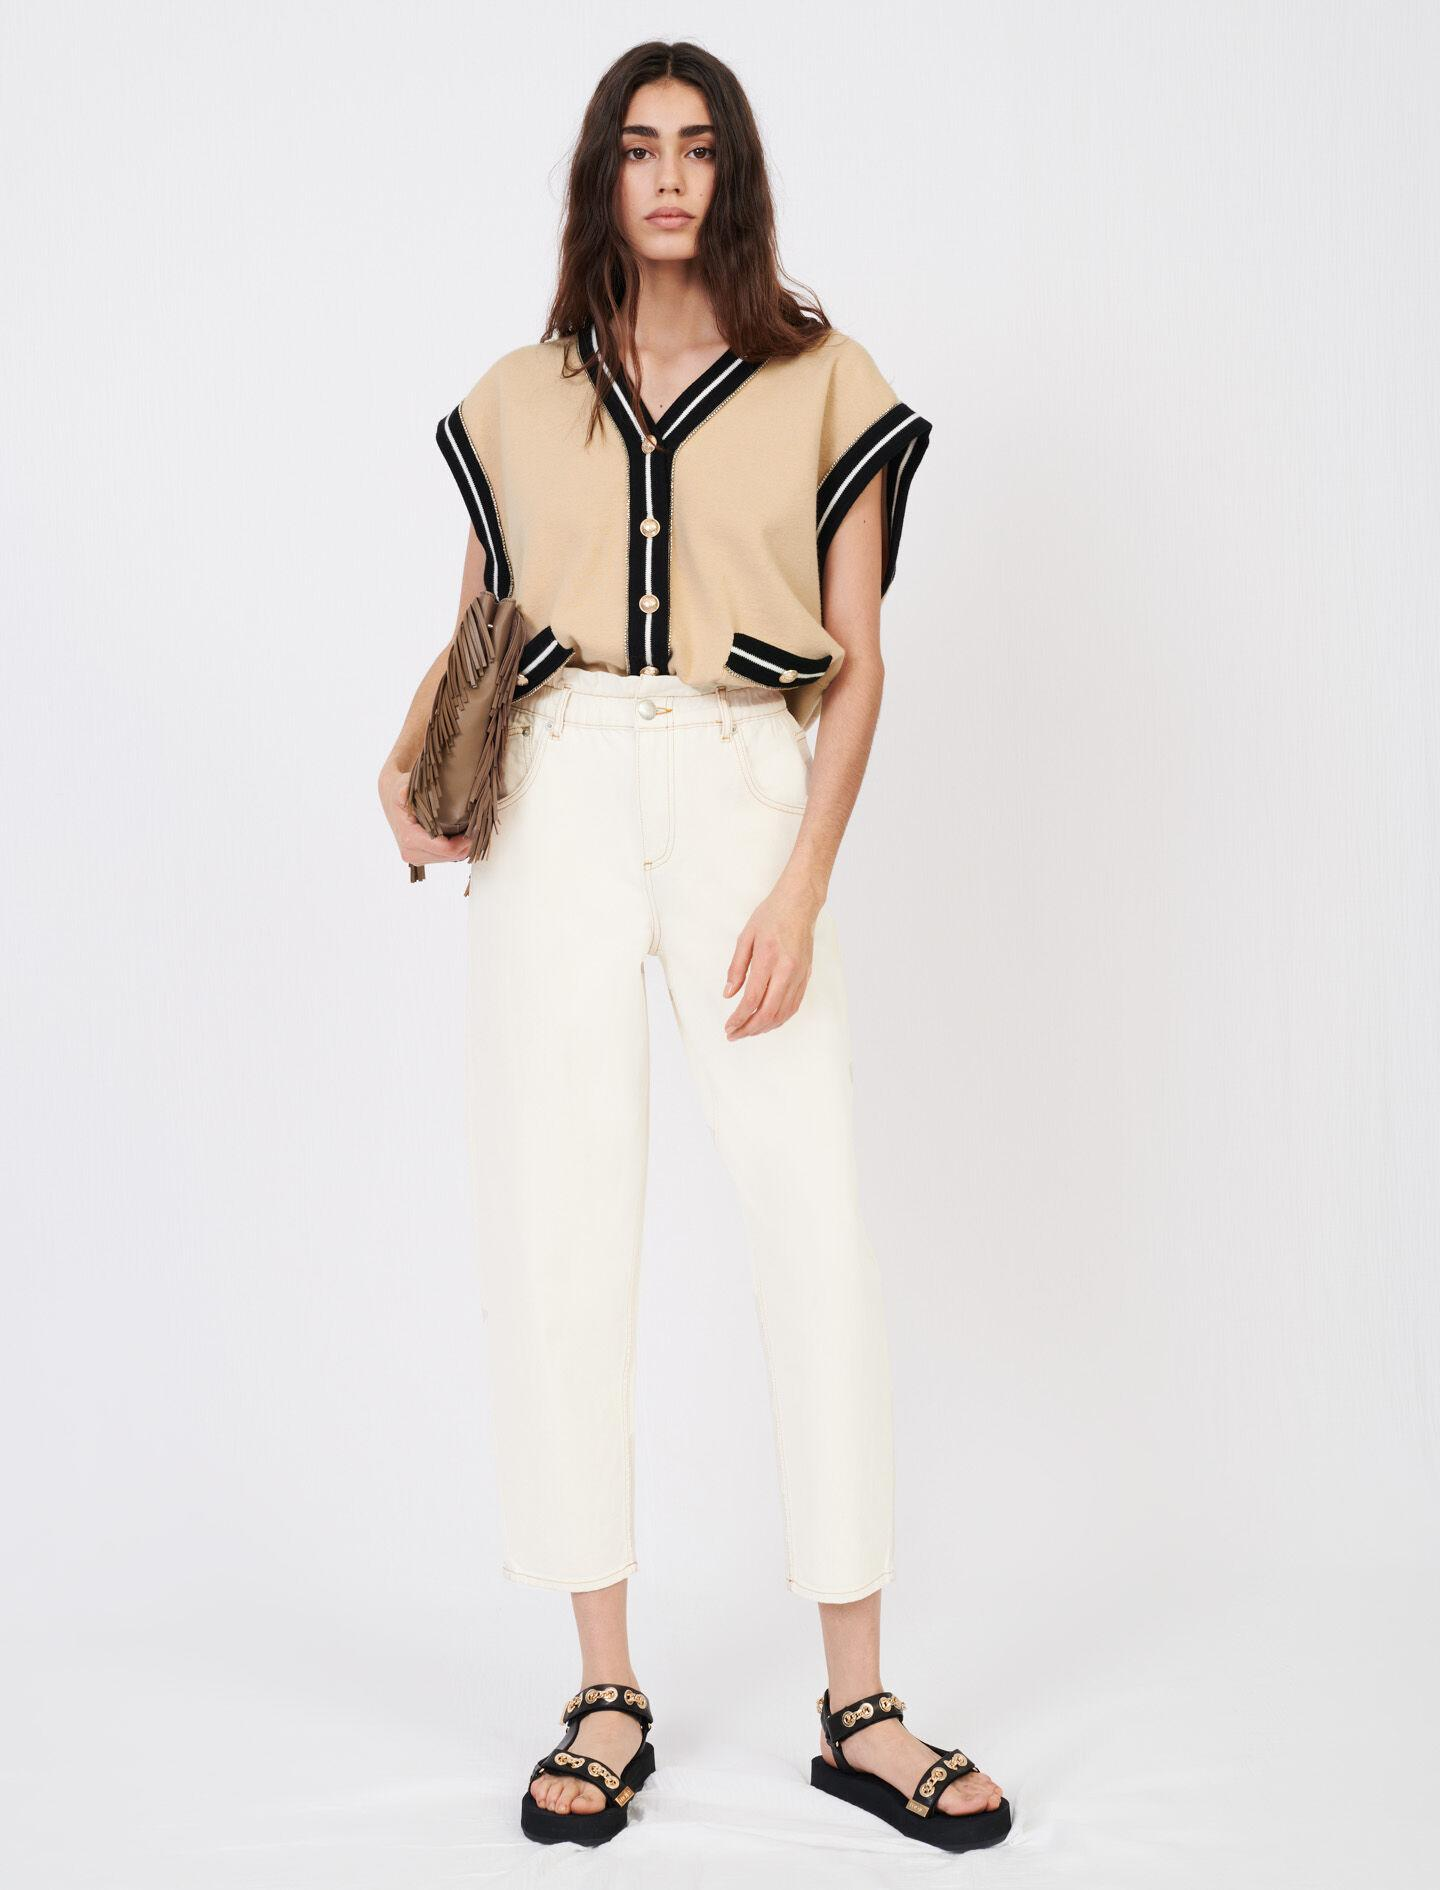 SLEEVELESS CARDIGAN WITH CONTRAST BANDS